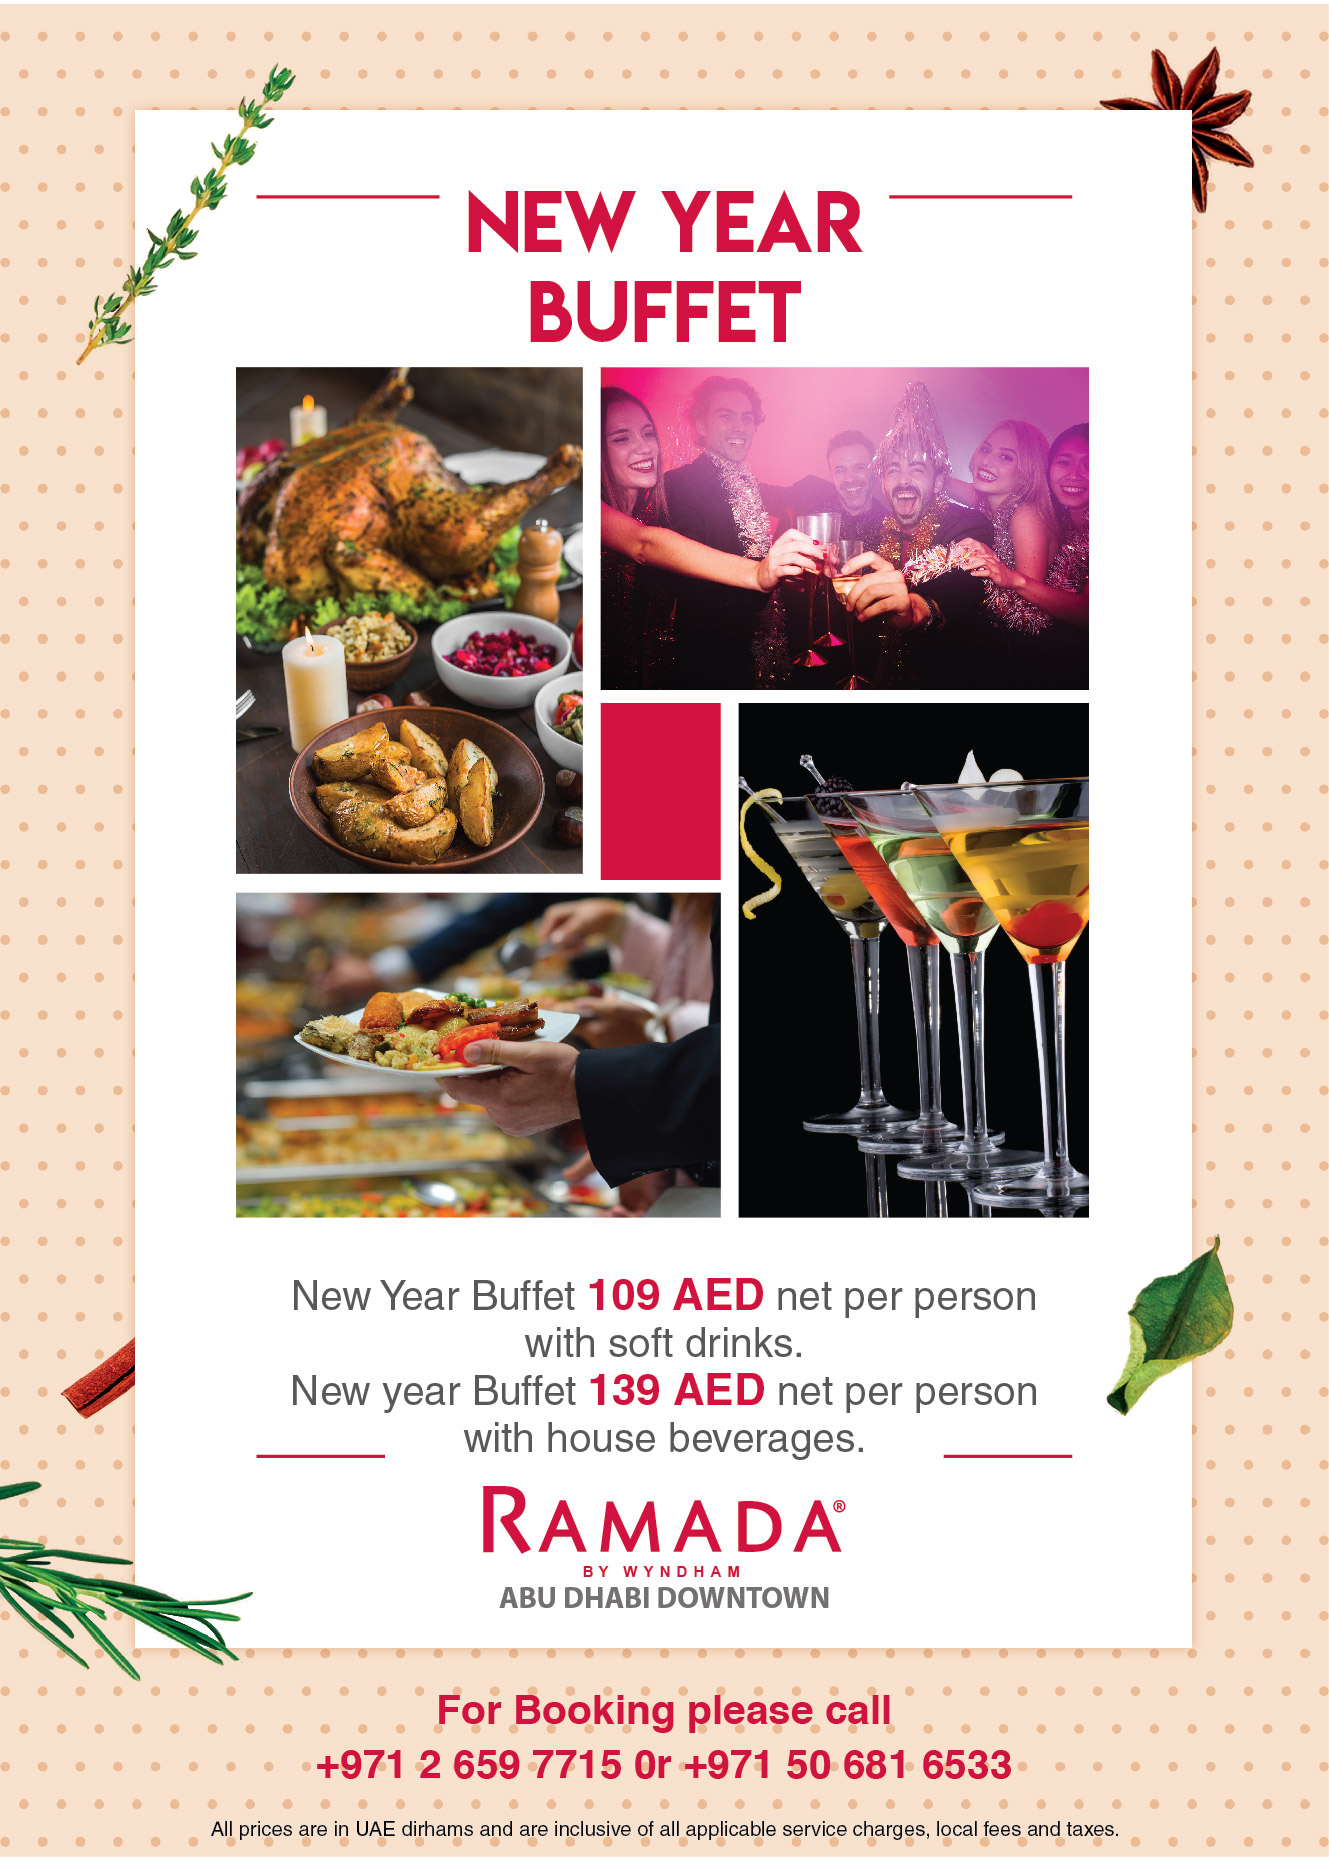 New Year Buffet